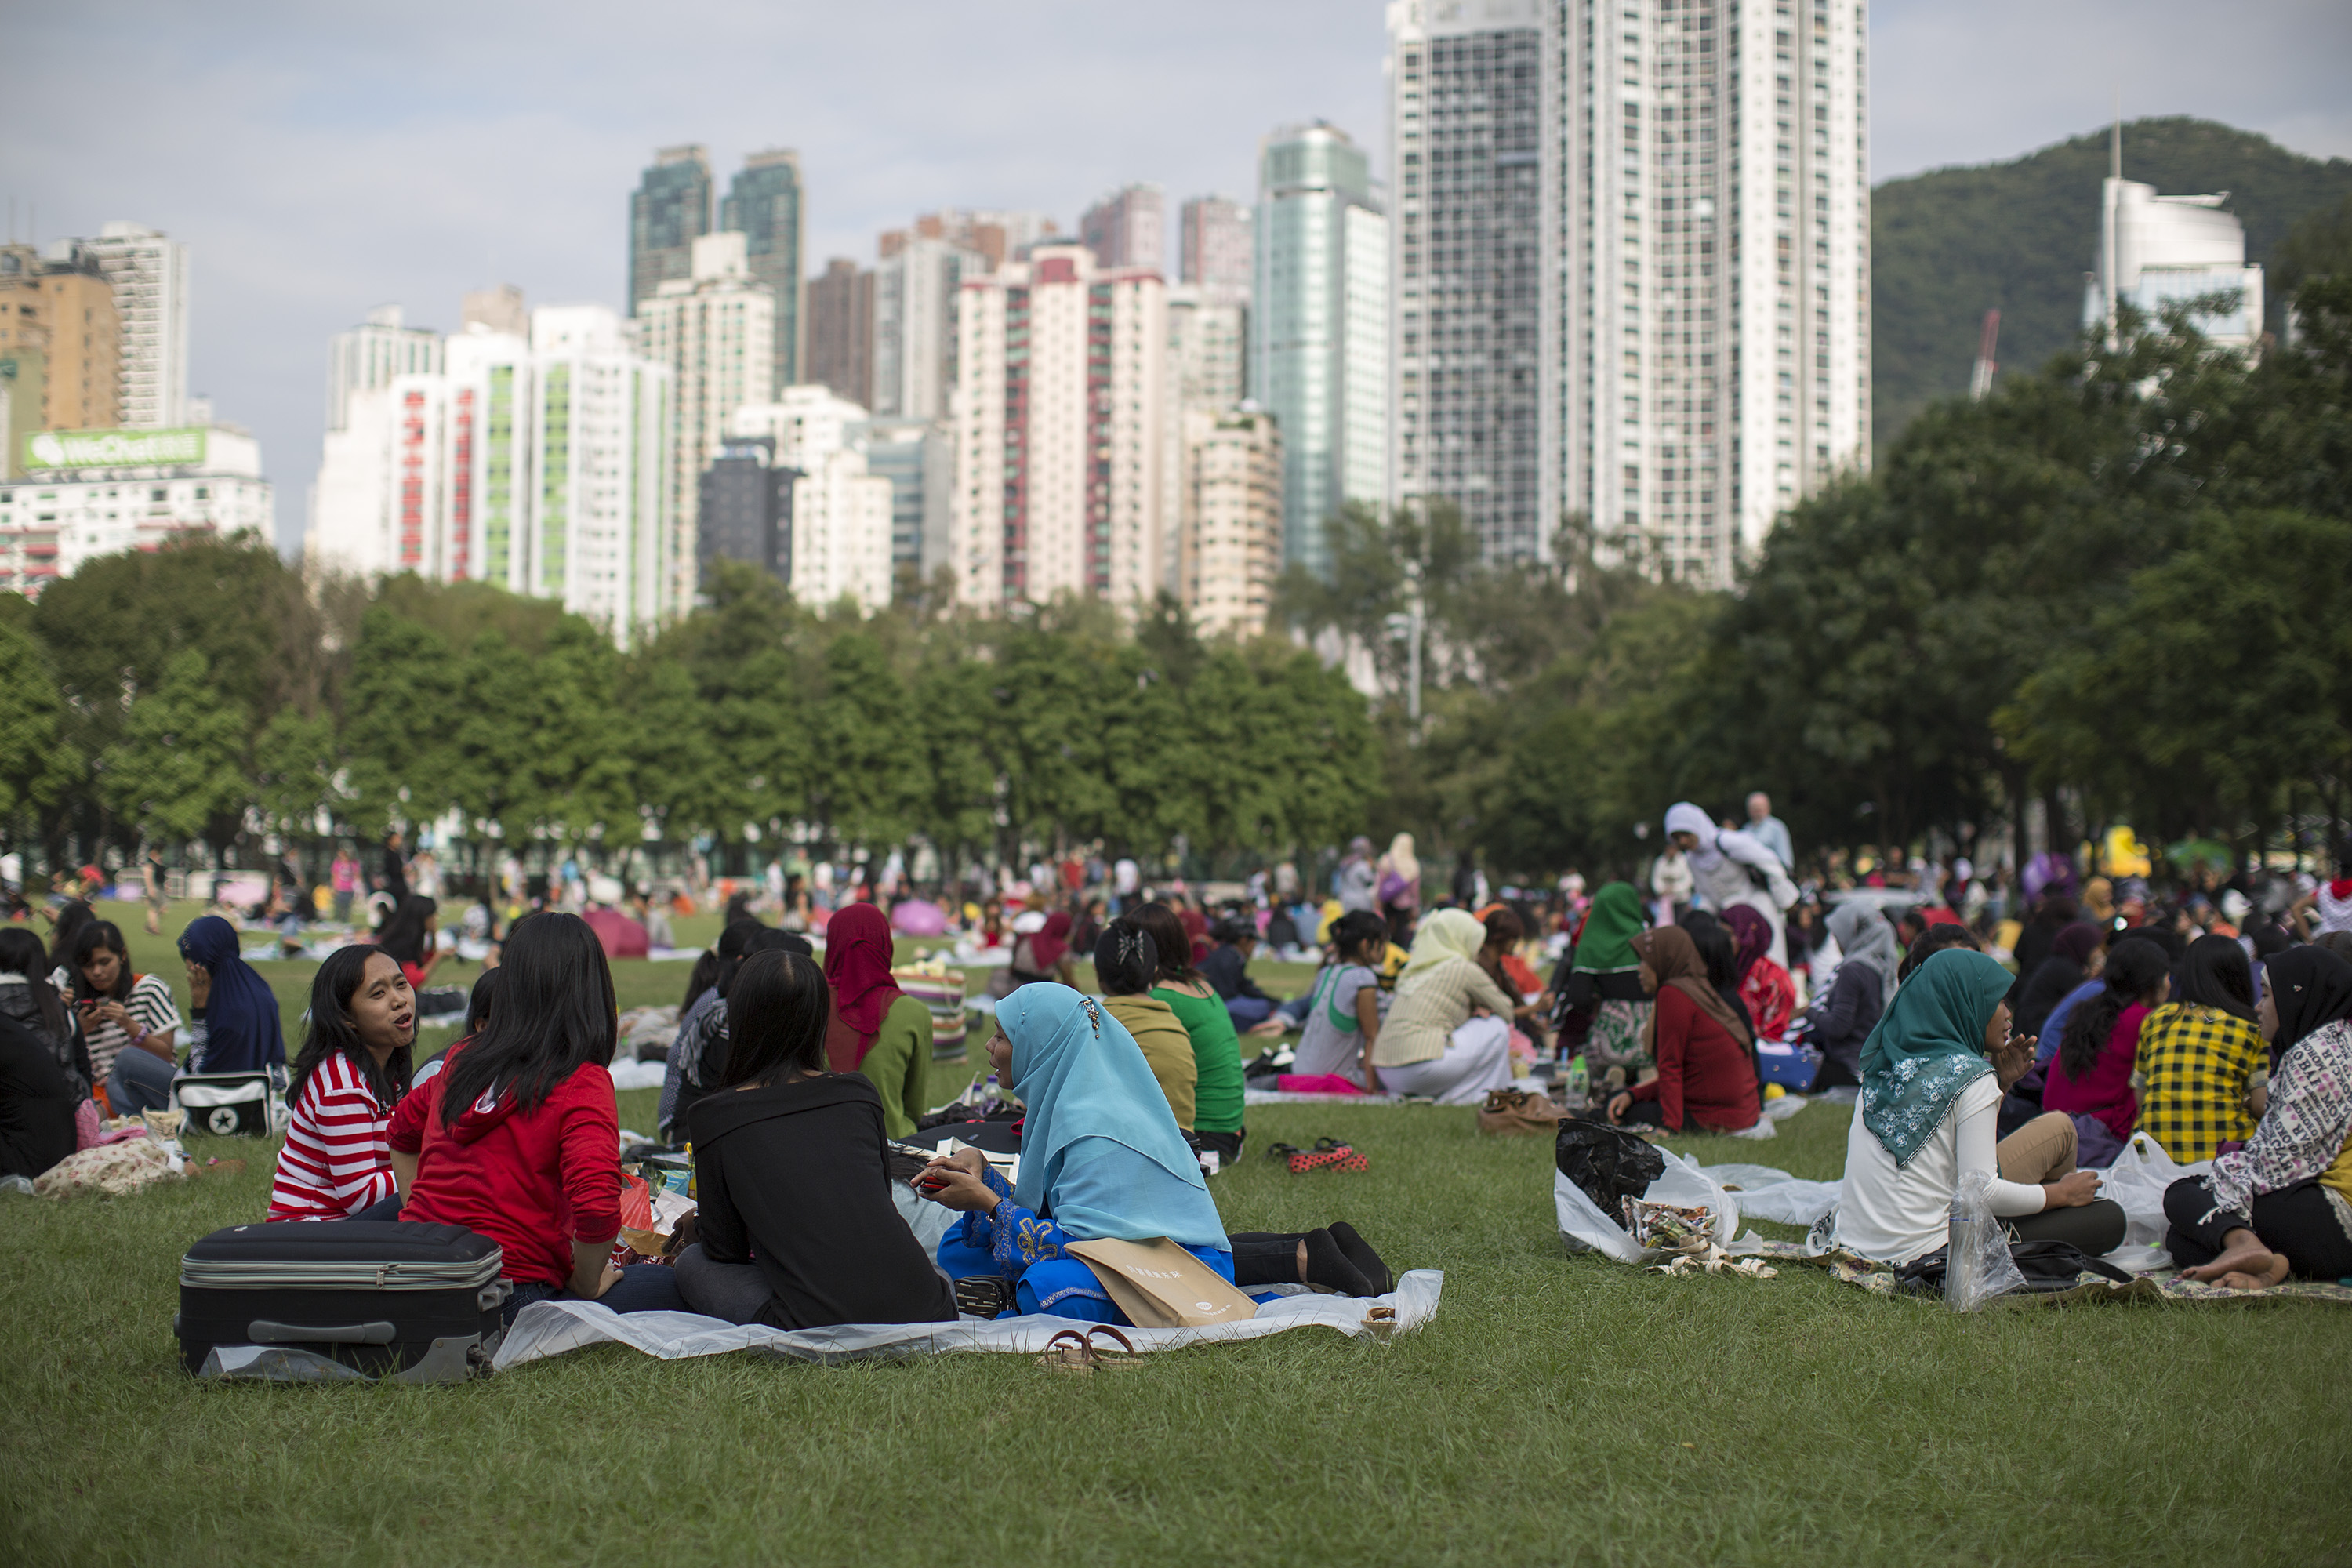 Migrant workers sit in Victoria Park on their day off in Hong Kong on Nov. 11, 2012